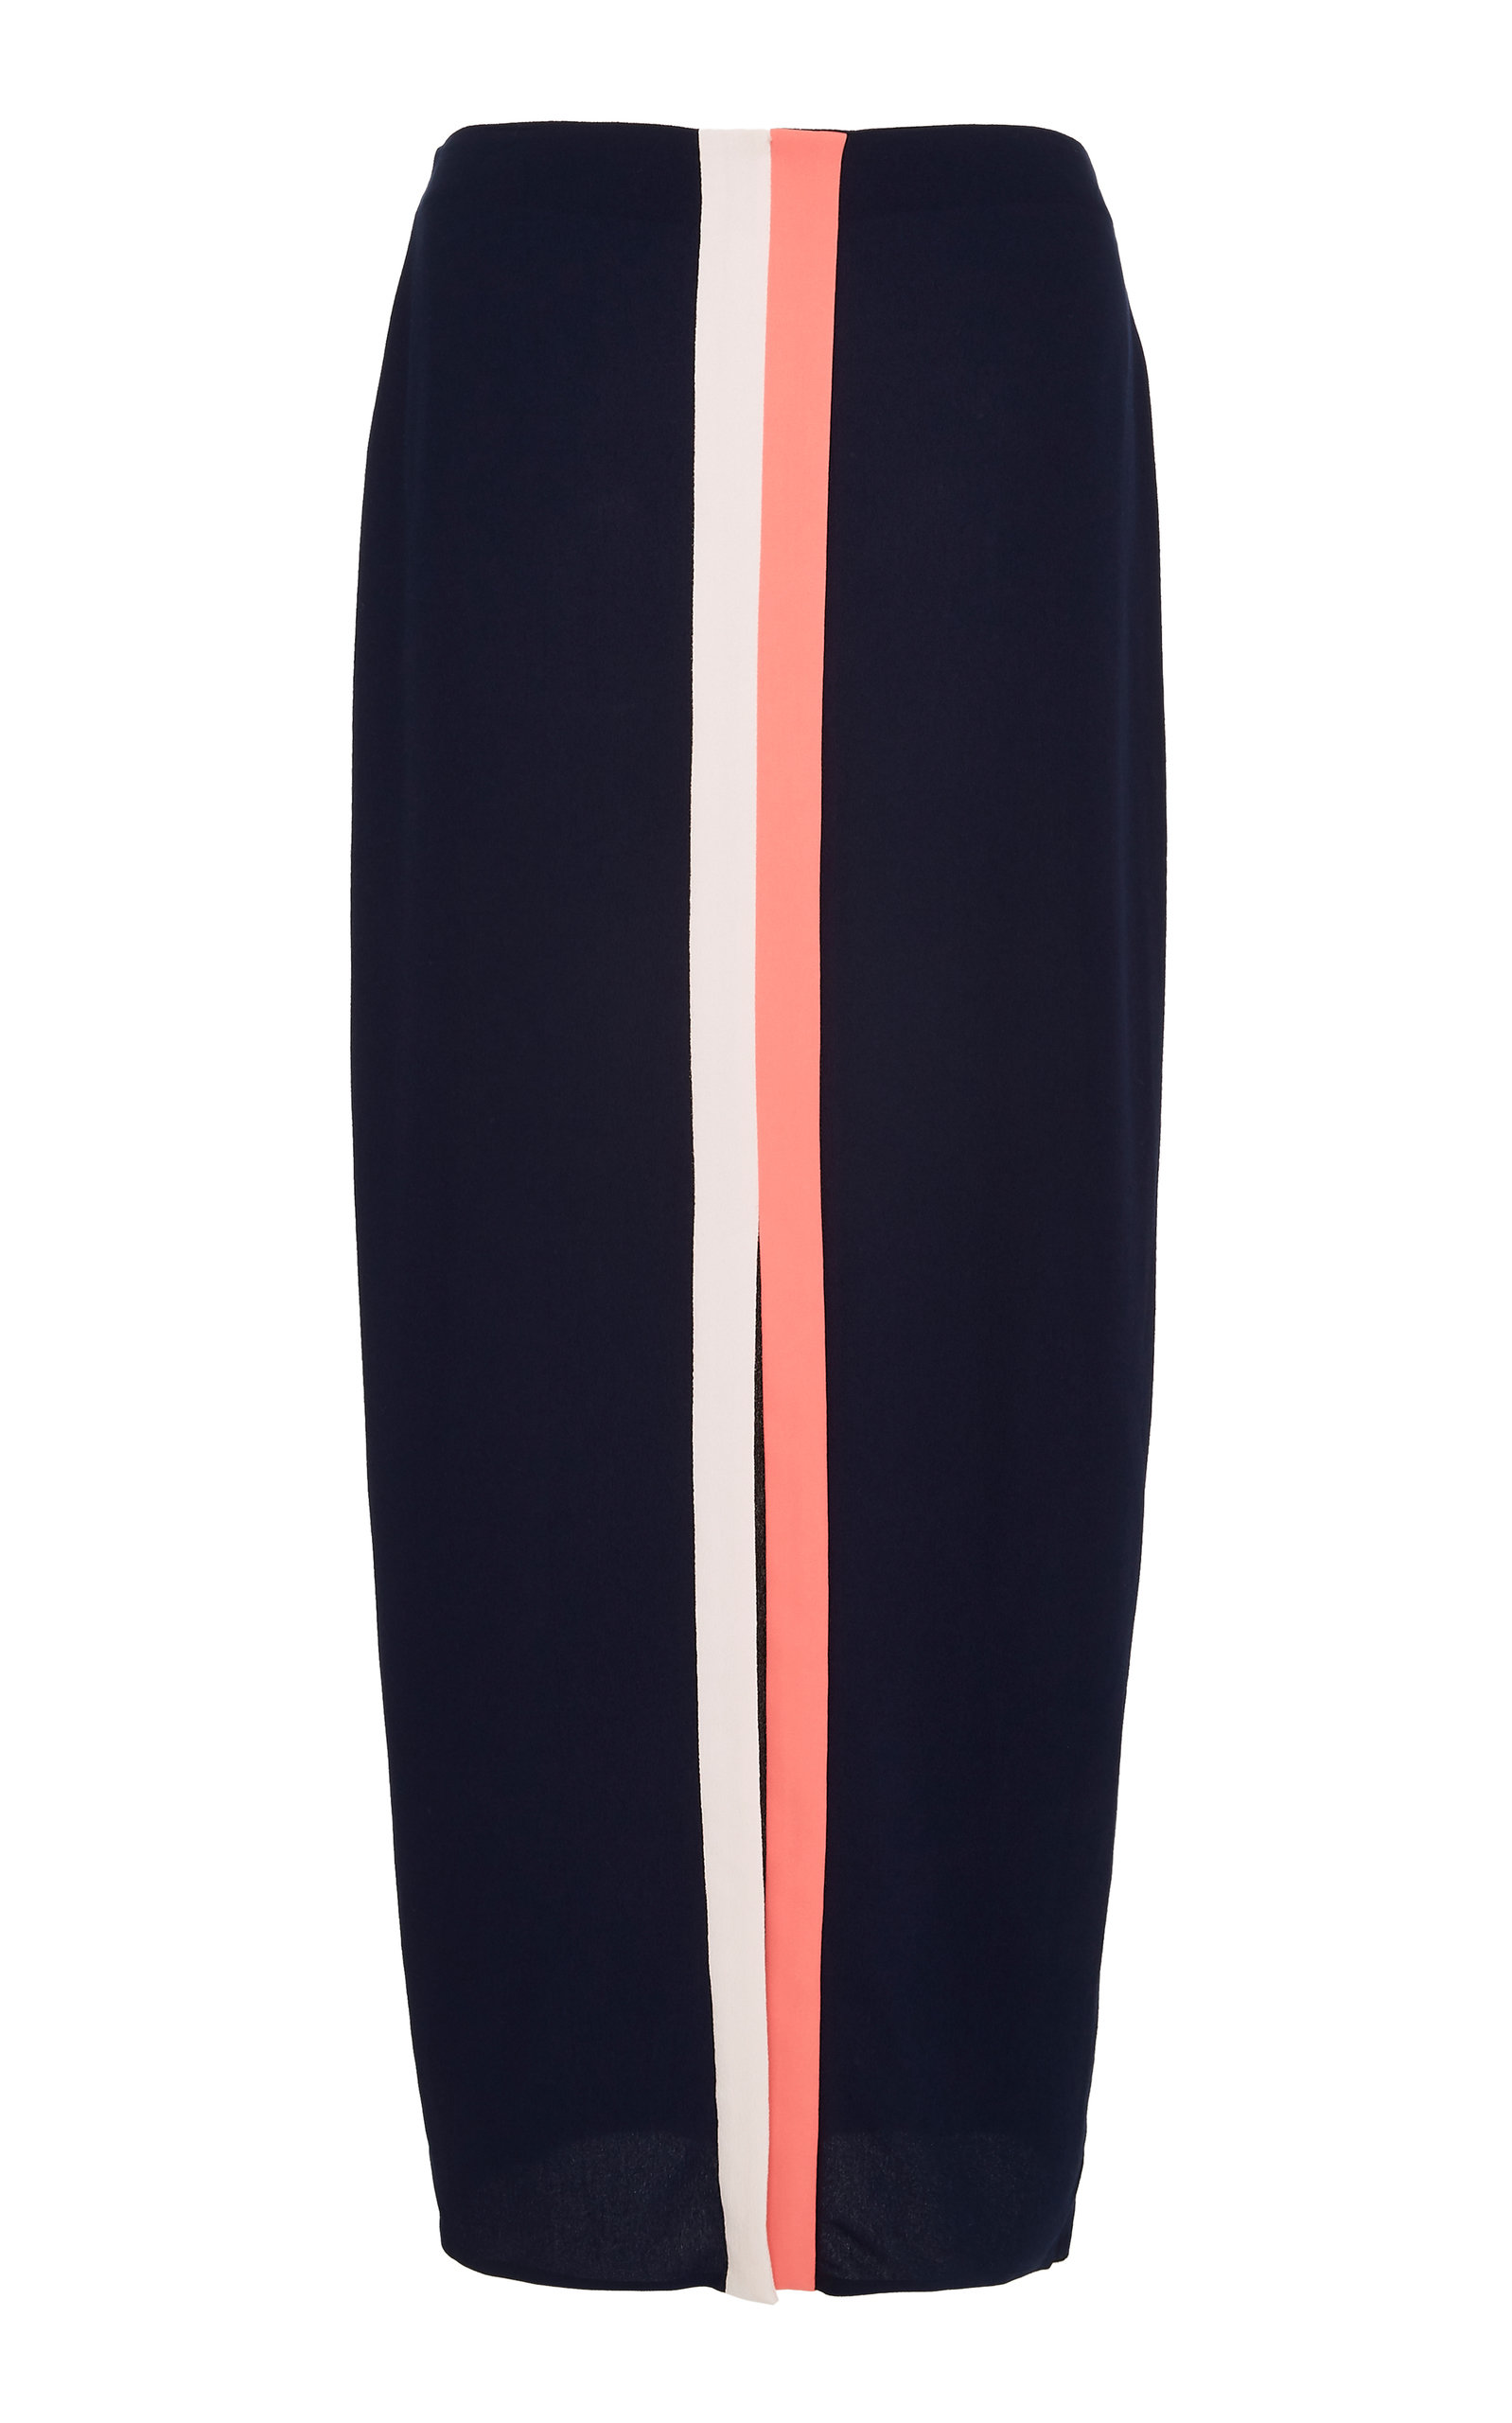 Flagpole EFFY STRIPED MIDI LENGTH SKIRT